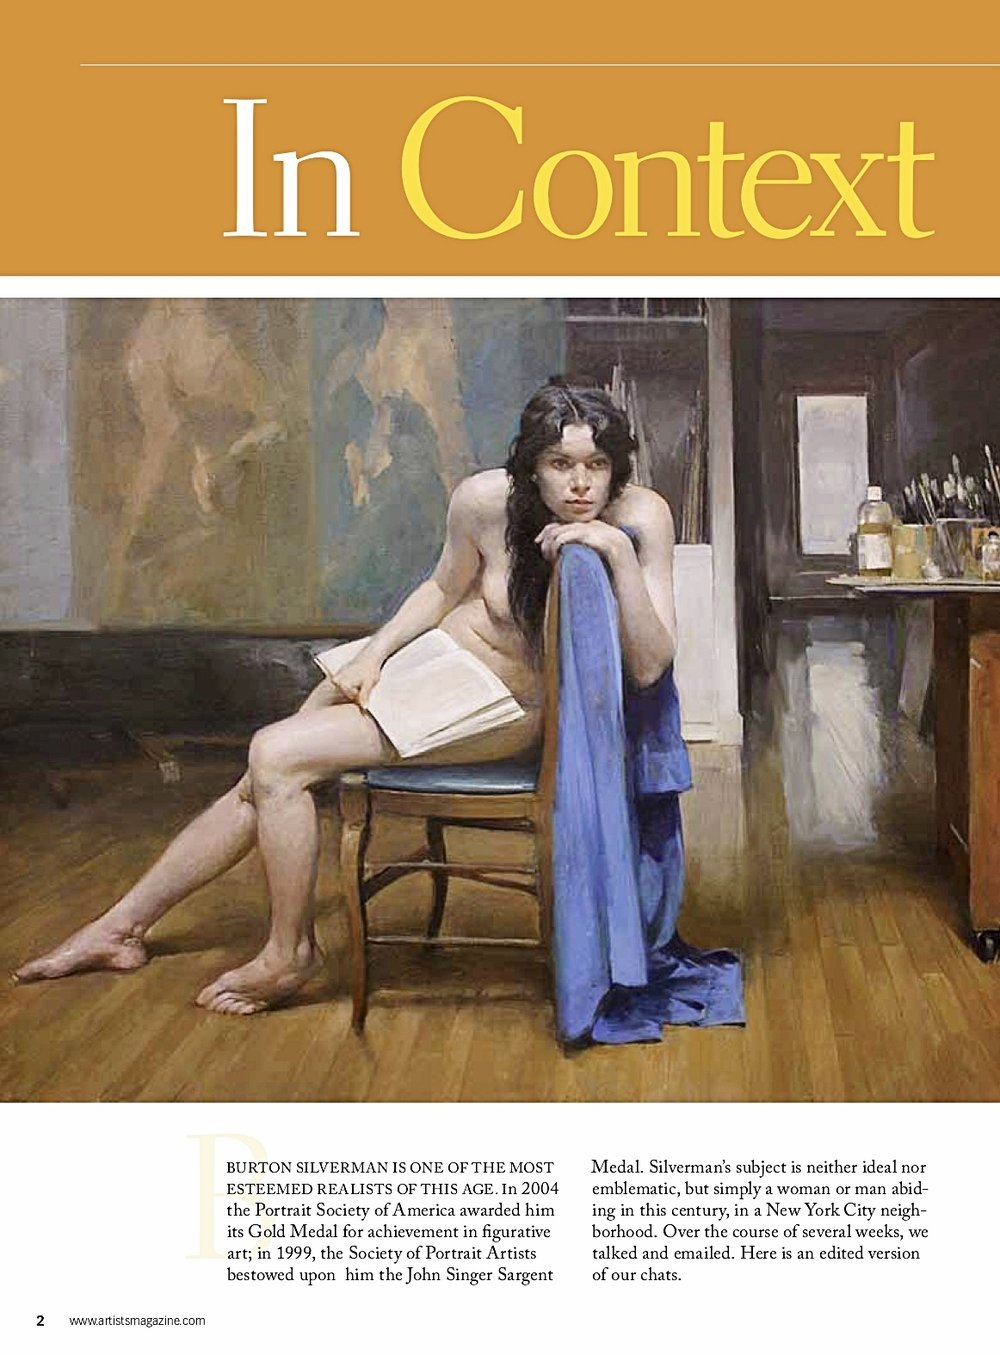 from the text: The Artists Magazine - As I started exhibiting work in the late 1950s at the Davis Galleries in New York City,I ran smack up against the alleged Triumph of Modernism, which forced me to start thinking and writing. I began asking what good art  was and then about what realist painting had to become in order to genuinely compete with those huge painted confections called abstract art. I believed realist painting had to use classic painting devices combined with 20th century sensibilities and sophistications. It was a tall order and, as I discovered, almost impossible to codify with any degree of certitude.